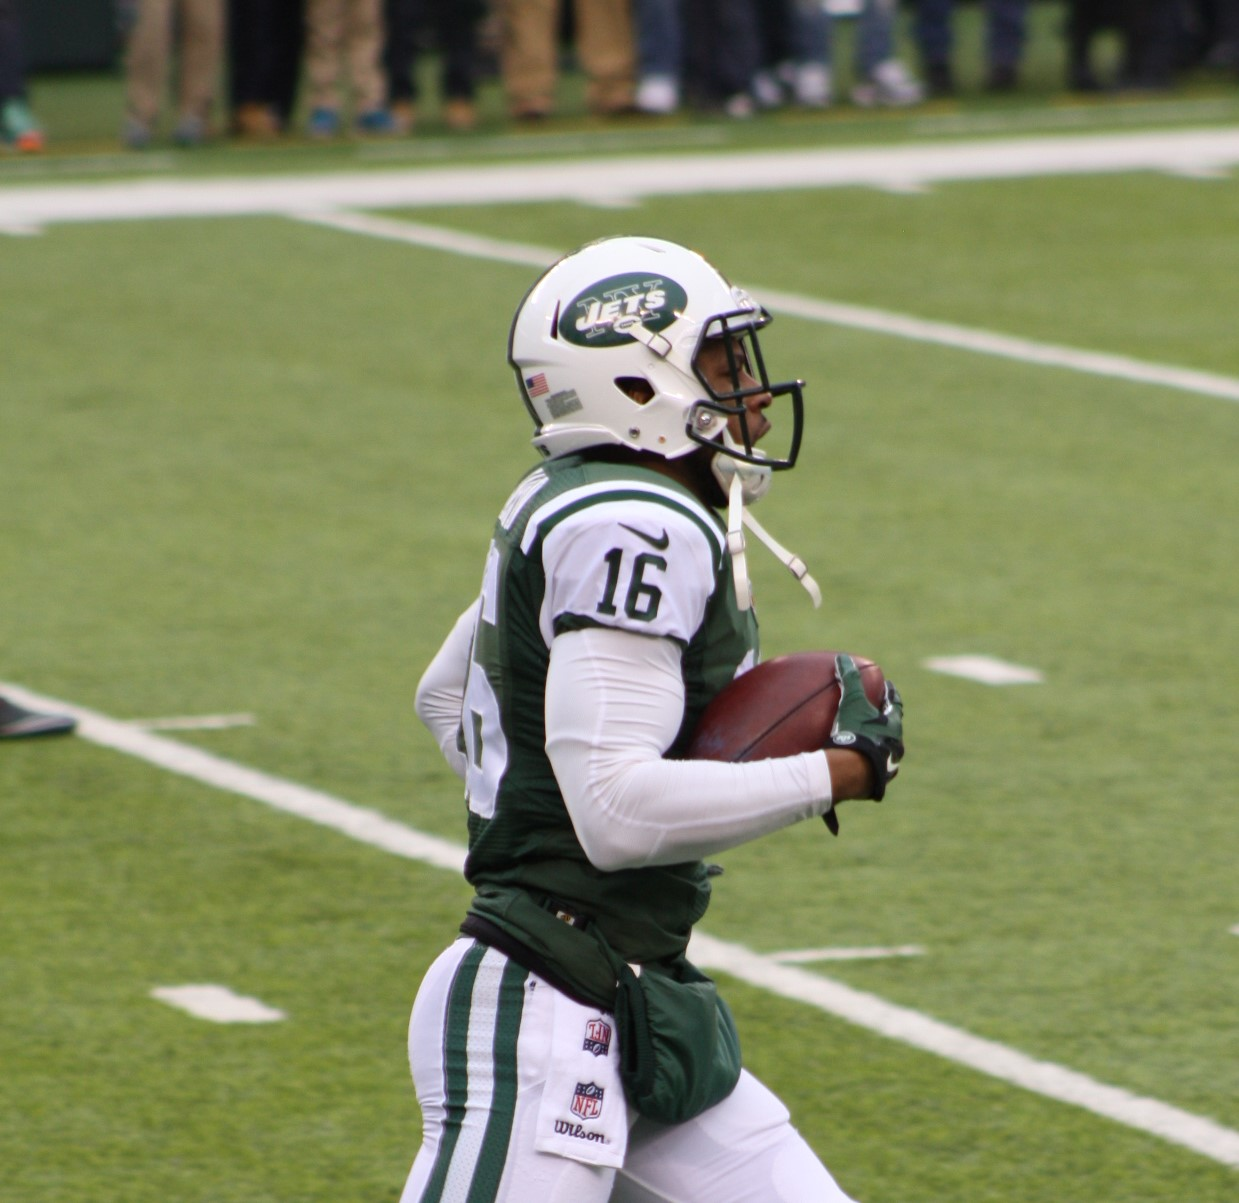 Jets Should Work to Retain Harvin